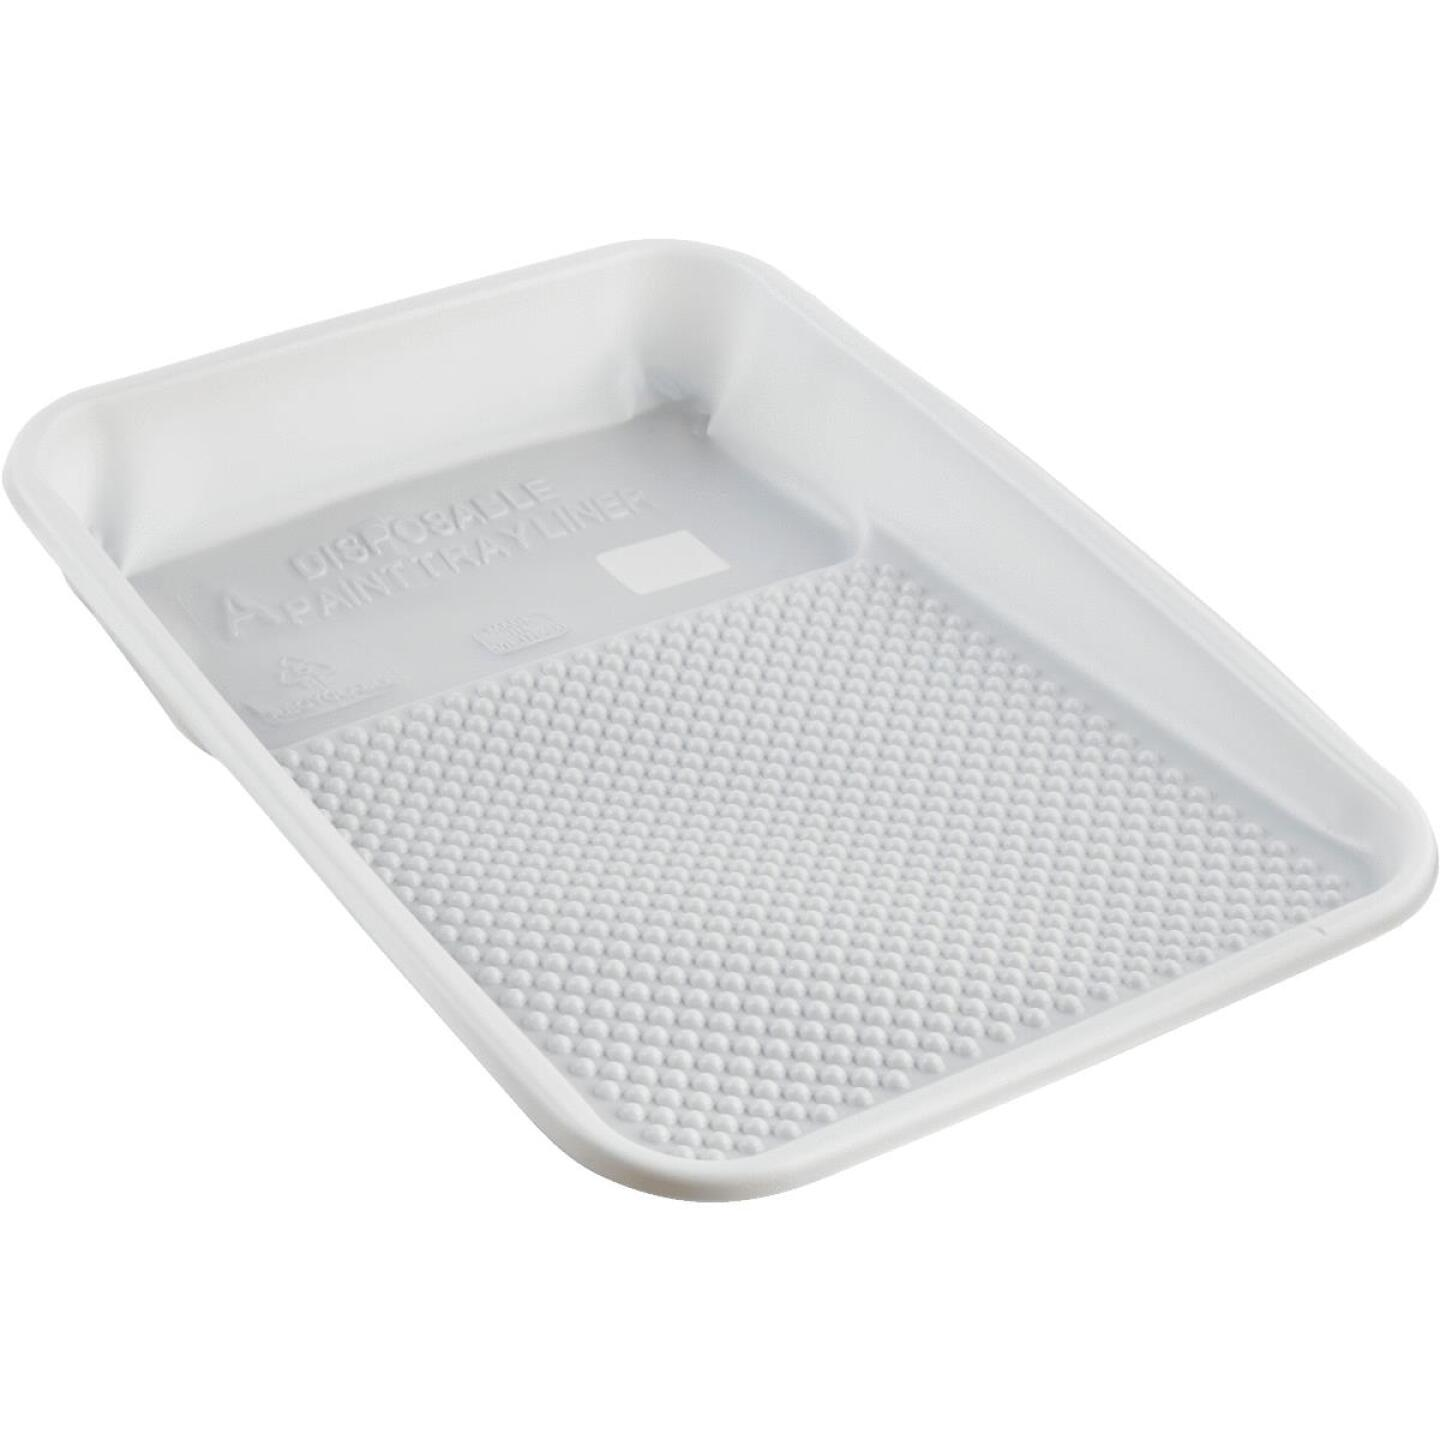 1 Quart Plastic Paint Tray Liner (10-Count) Image 1